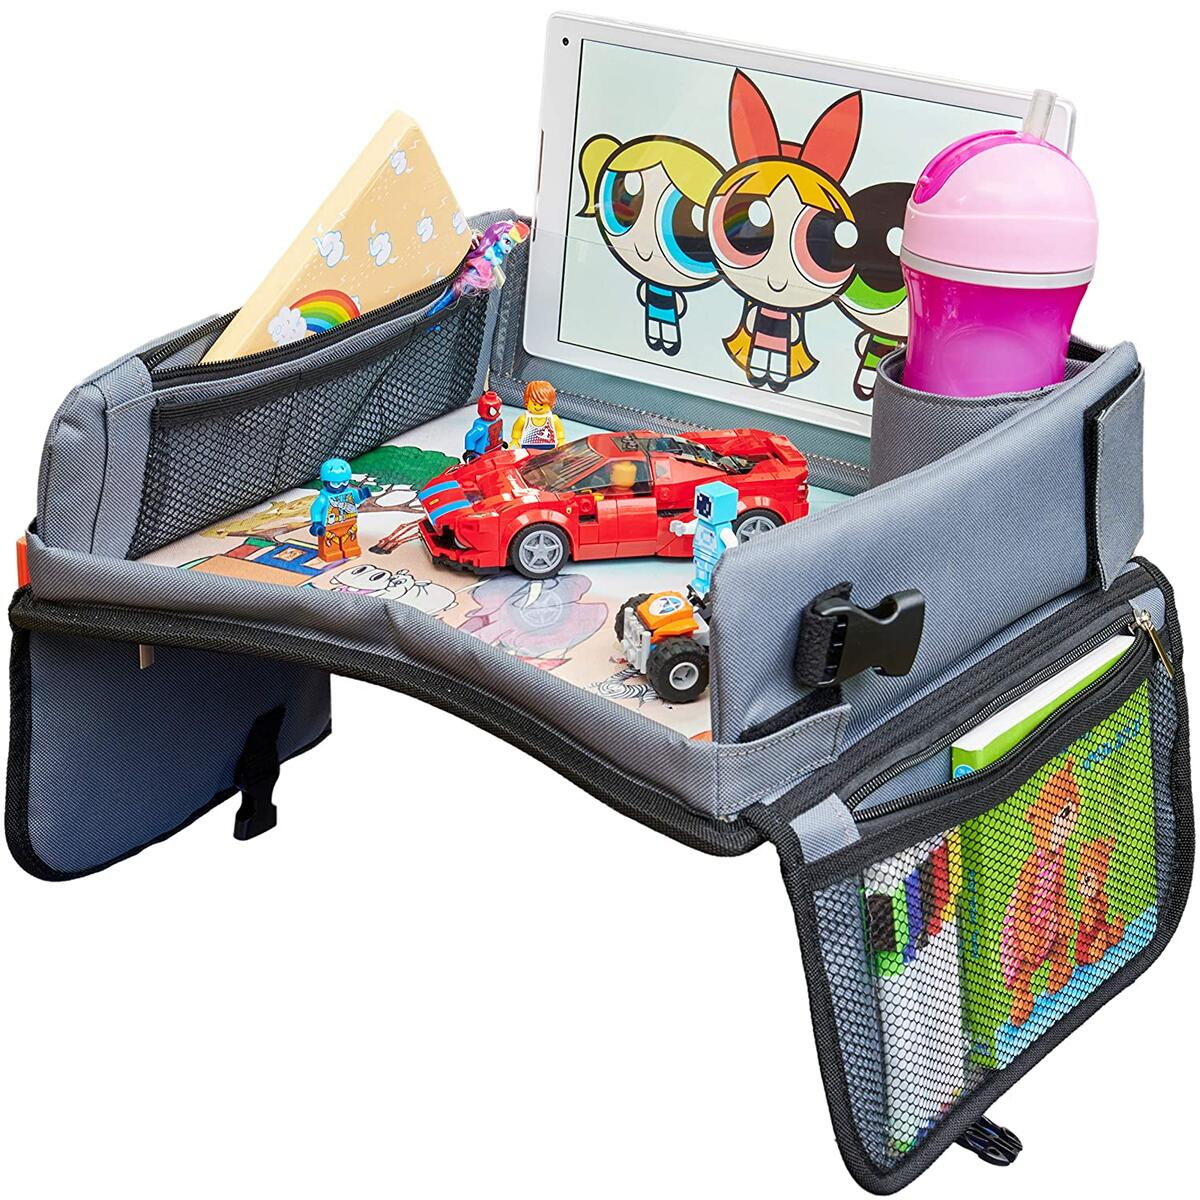 Kids Travel Tray, Car Seat Tray 13.5 x 12 inches Travel Art Desk for Kids, with Dry Erase - Keeps Children Entertained – Portable and Foldable + Storage Bag…